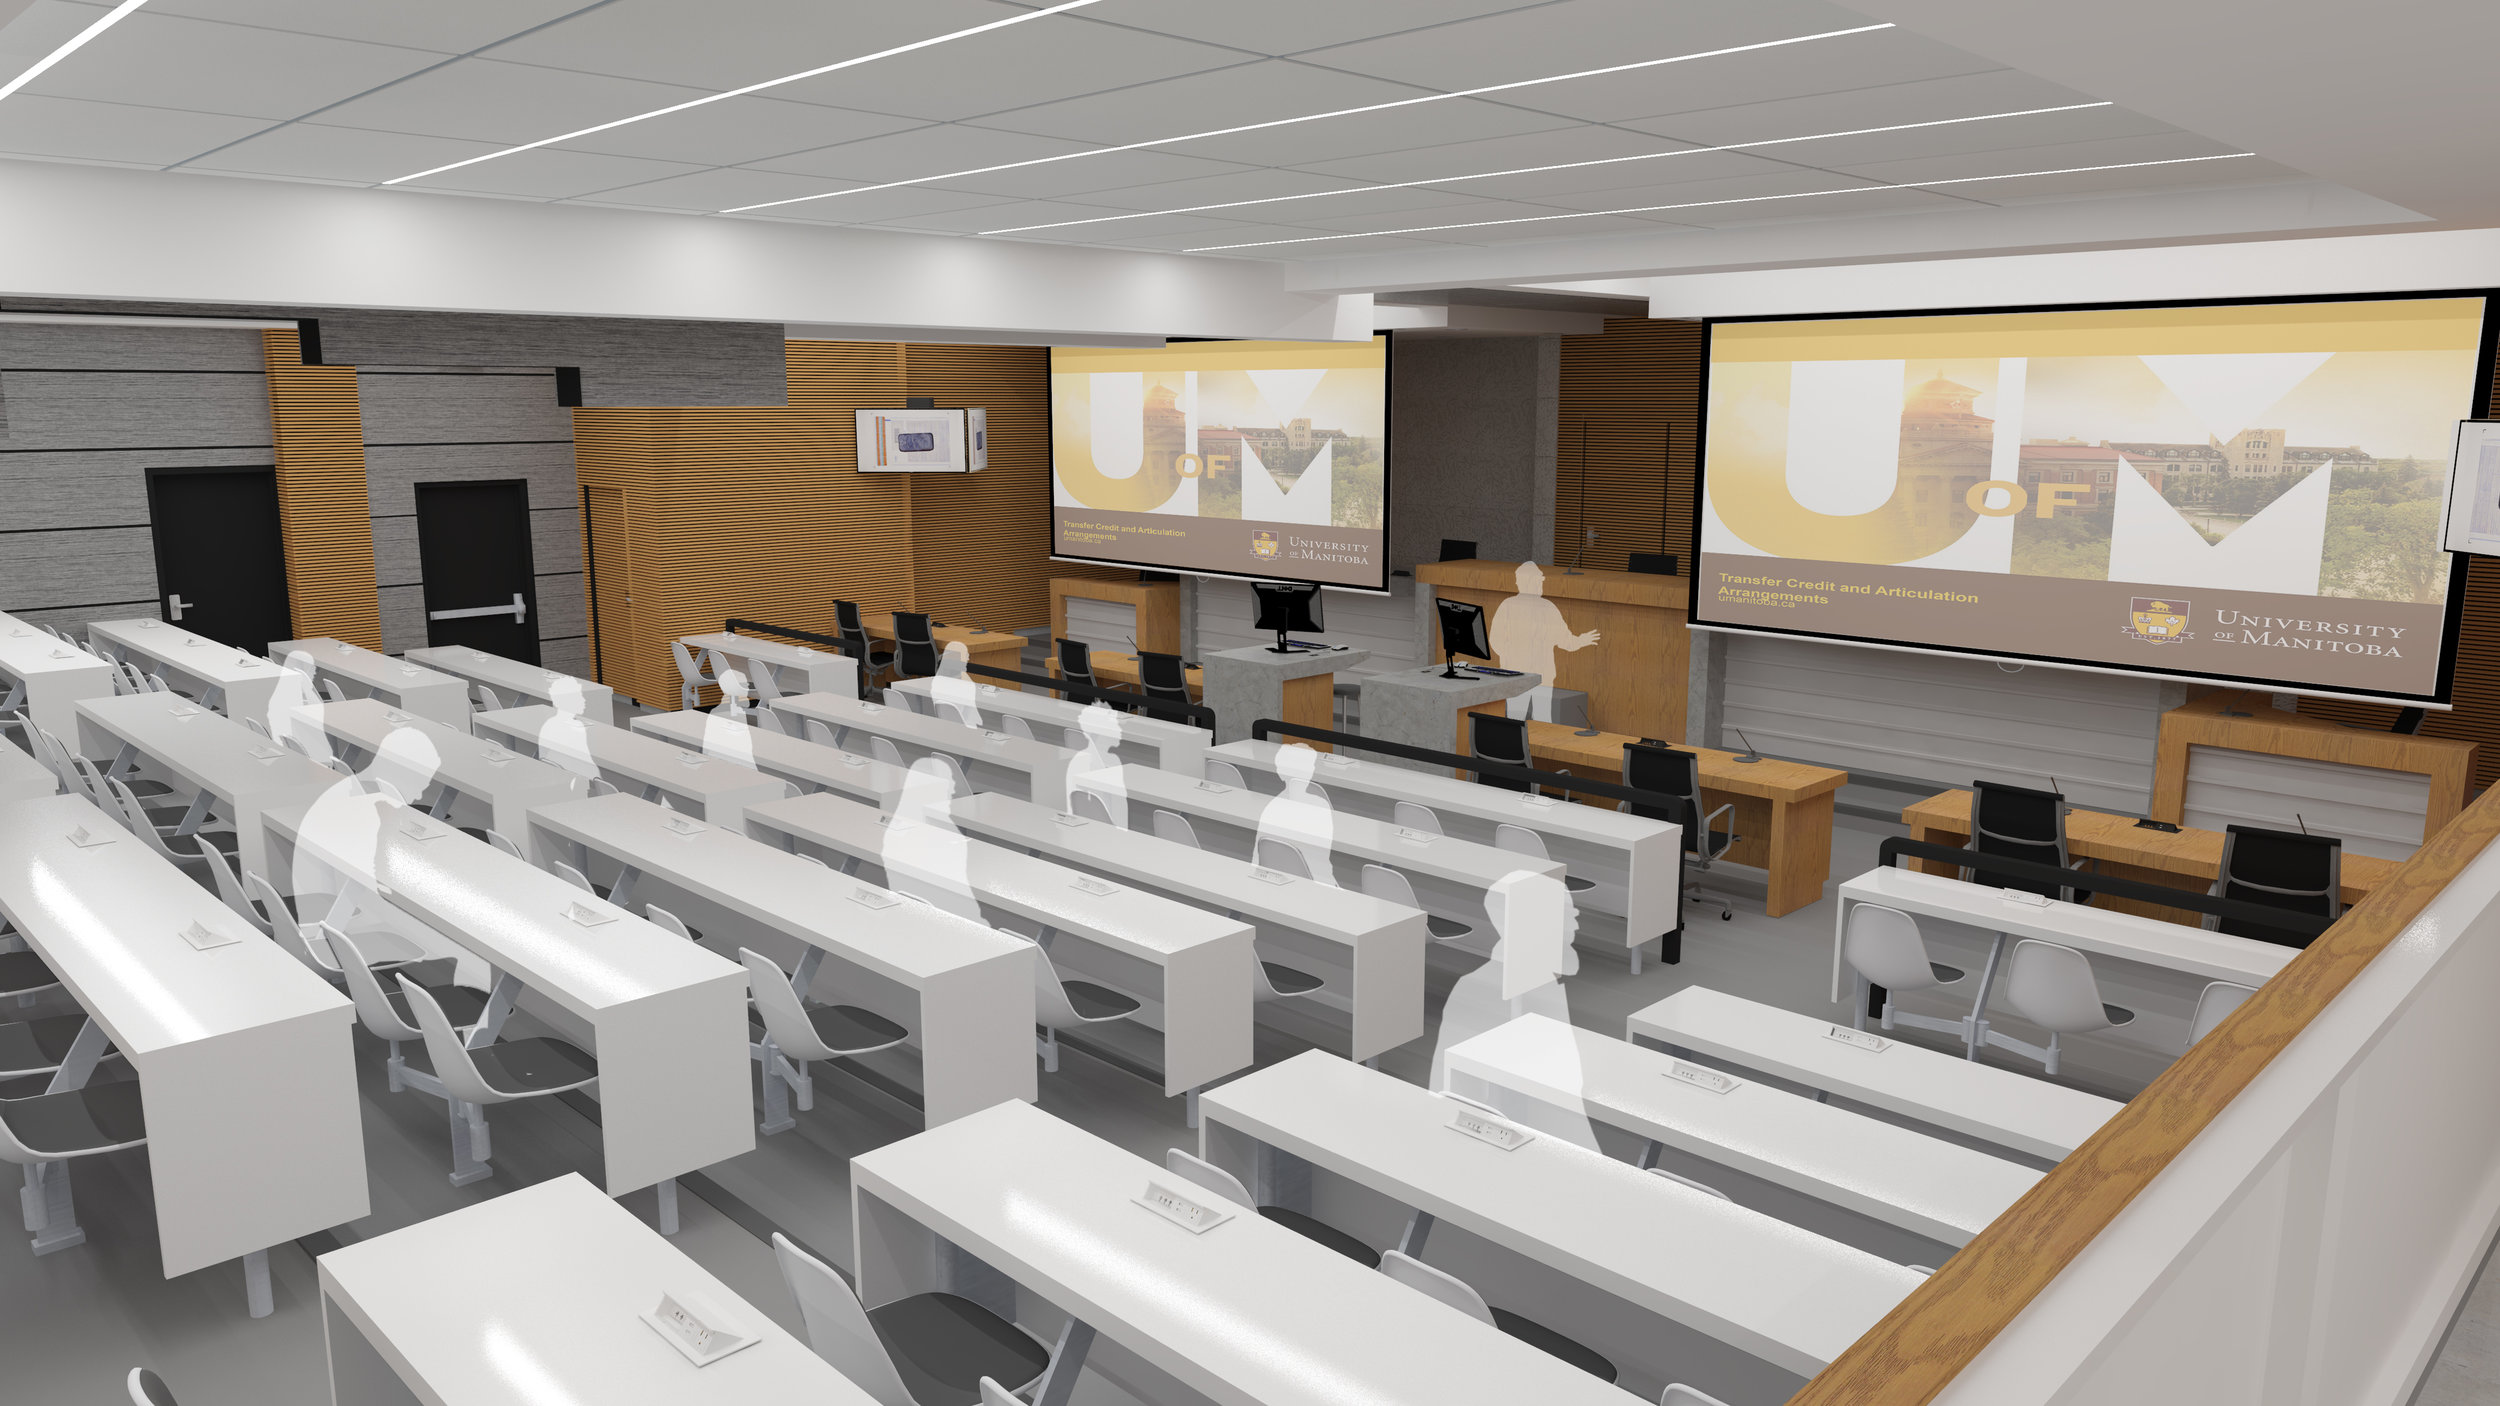 University of Manitoba - Various projects completed for the University of Manitoba including fire damage restoration, entrance accessibility, and classroom and laboratory upgrades.